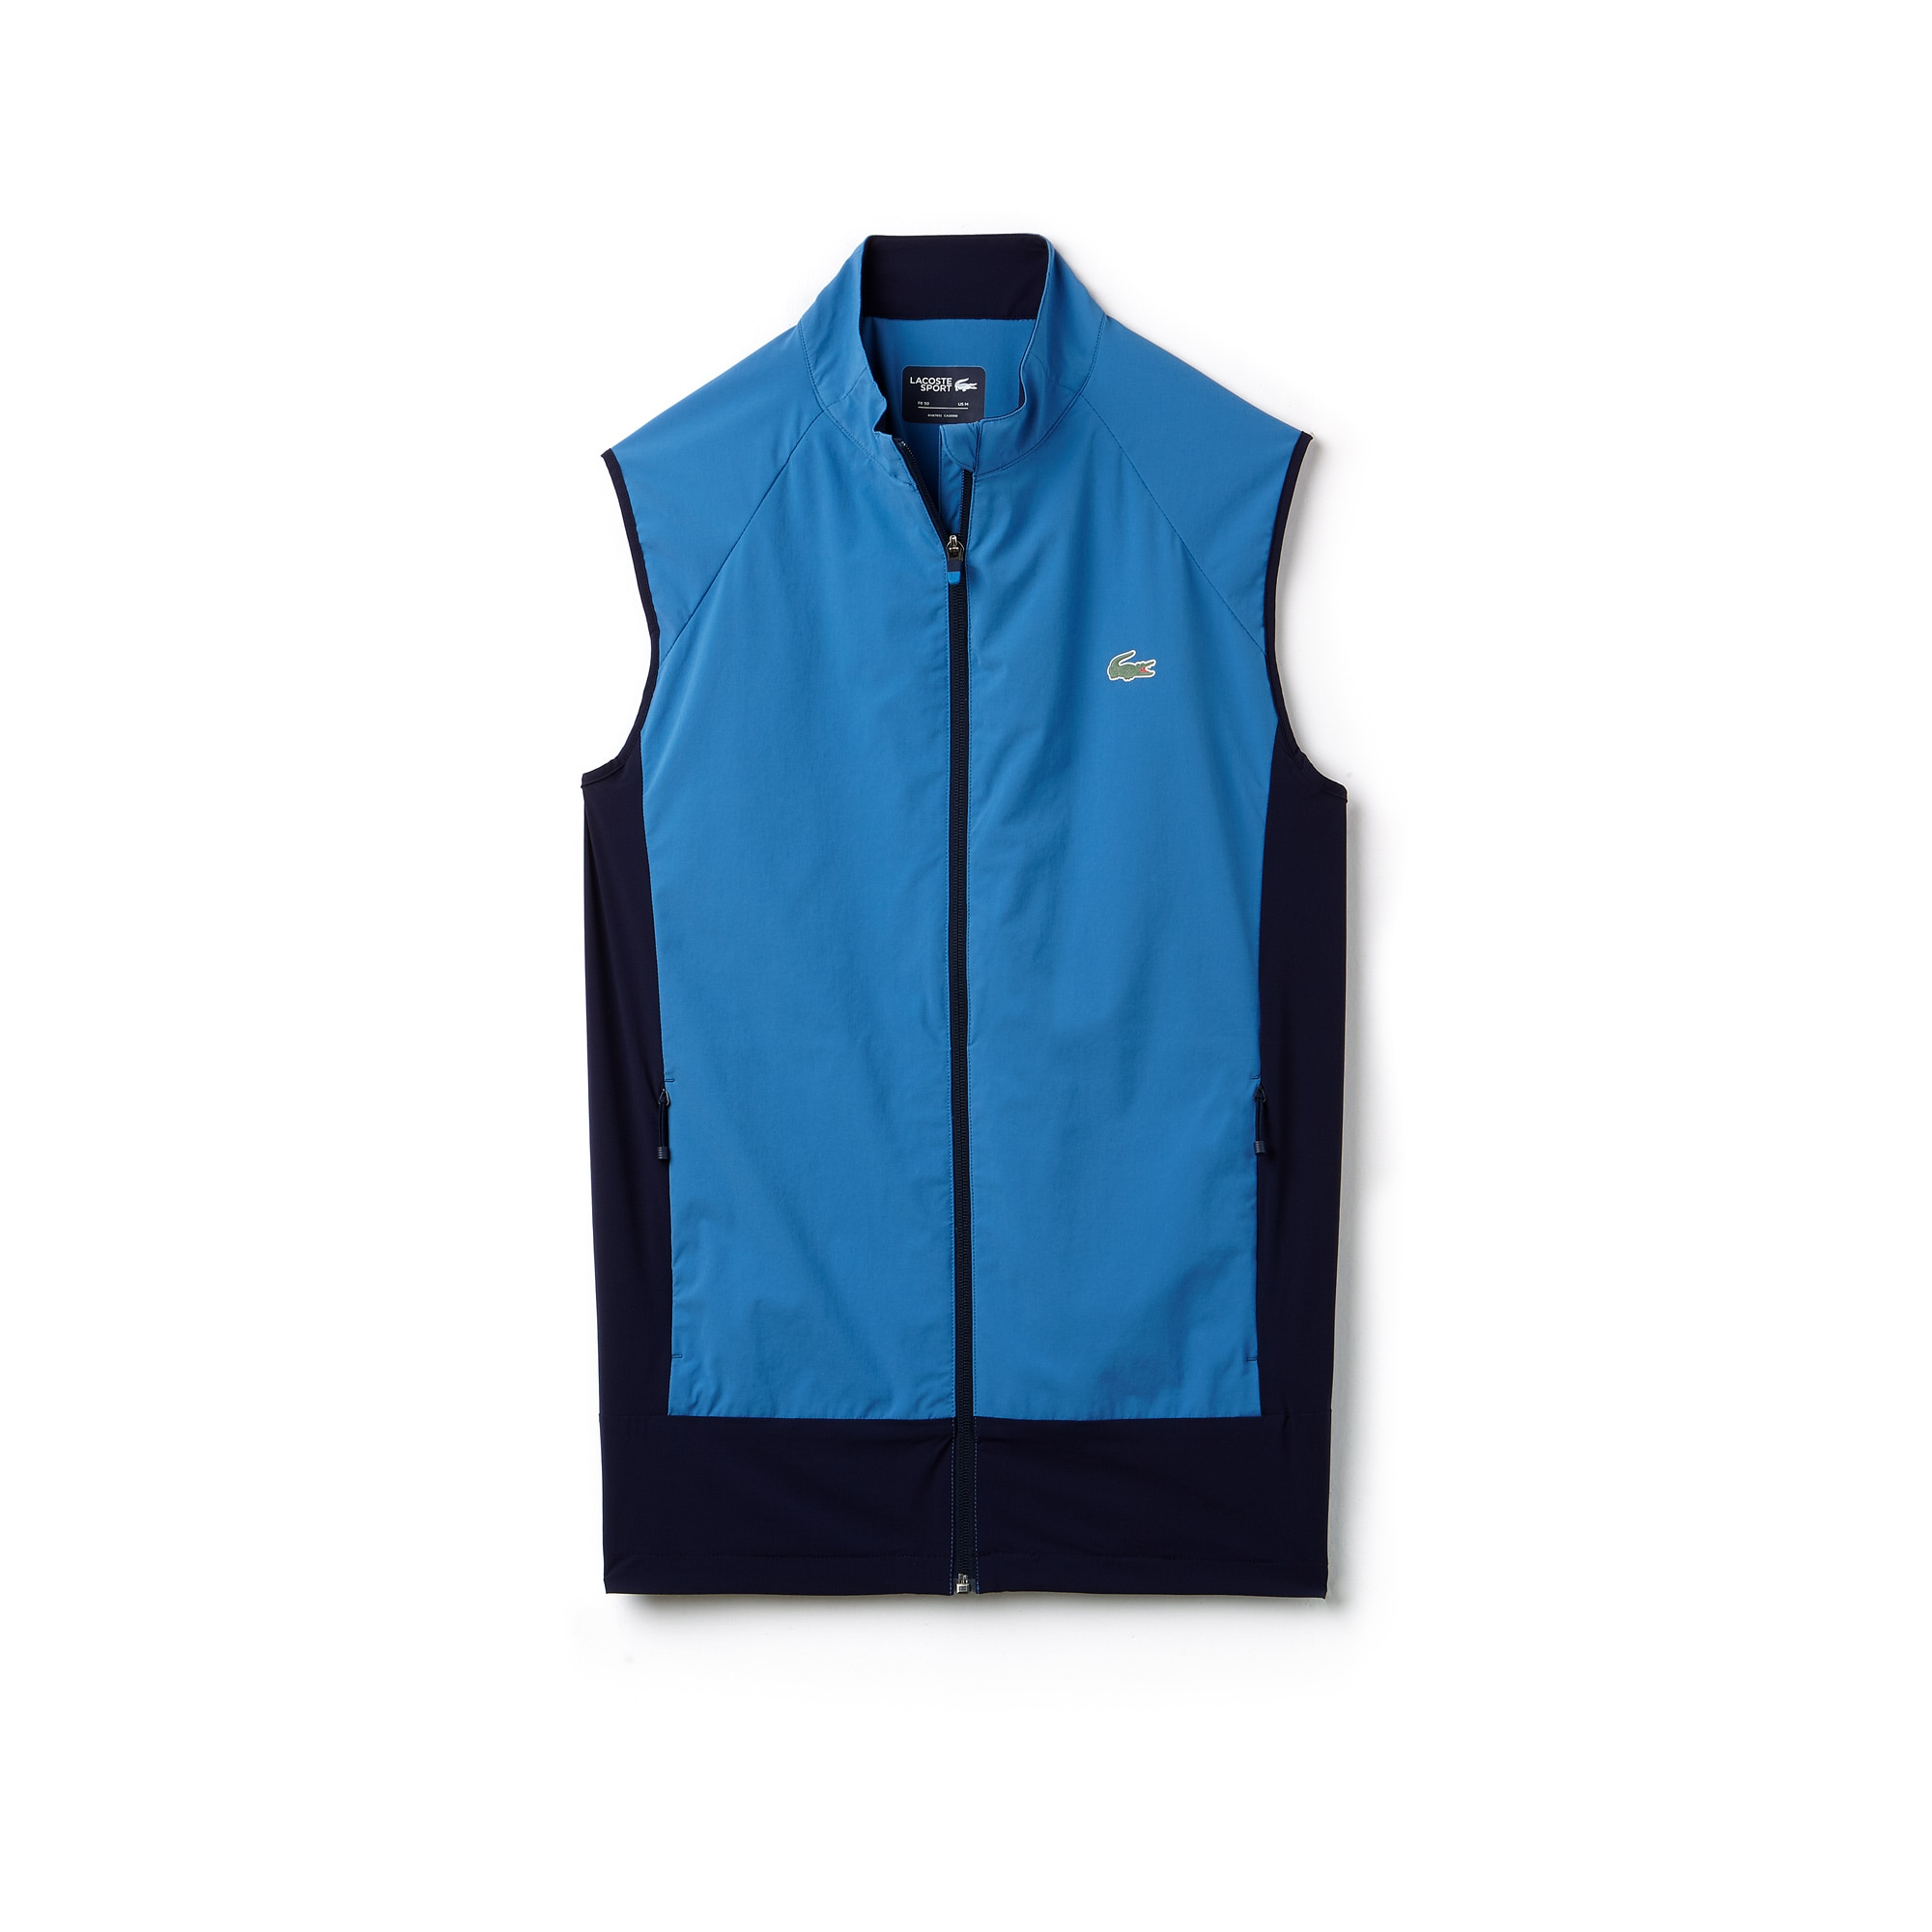 라코스테 Lacoste Mens SPORT Colorblock Technical Taffeta Golf Quilted Vest,blue / navy blue